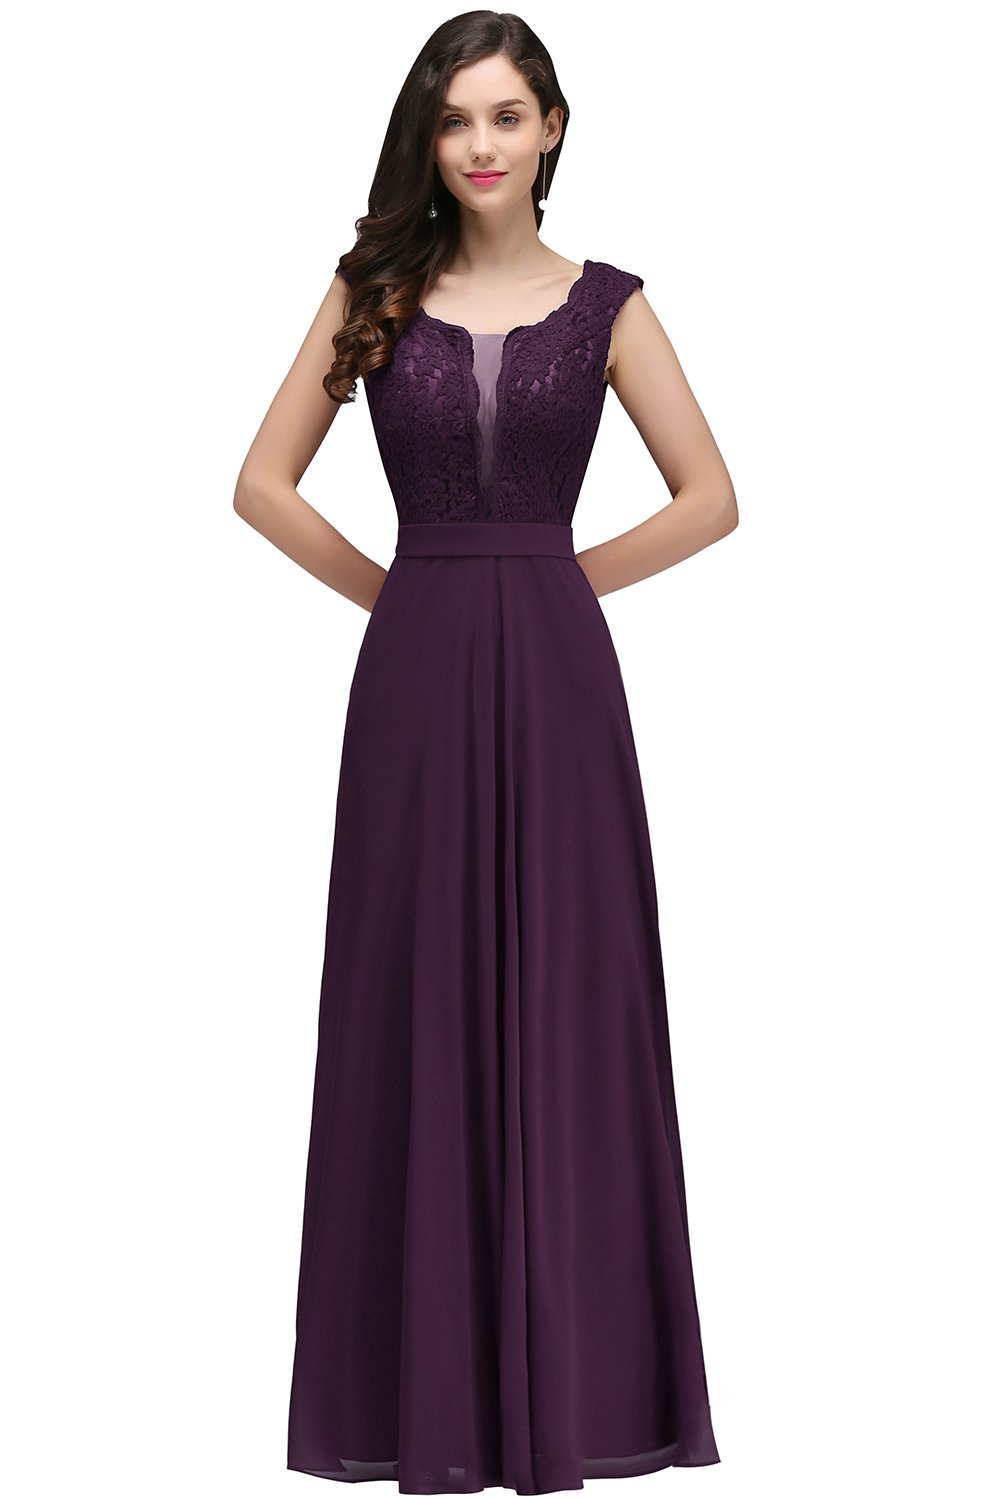 Purple Bridesmaid Dresses Short Or Long All Sizes